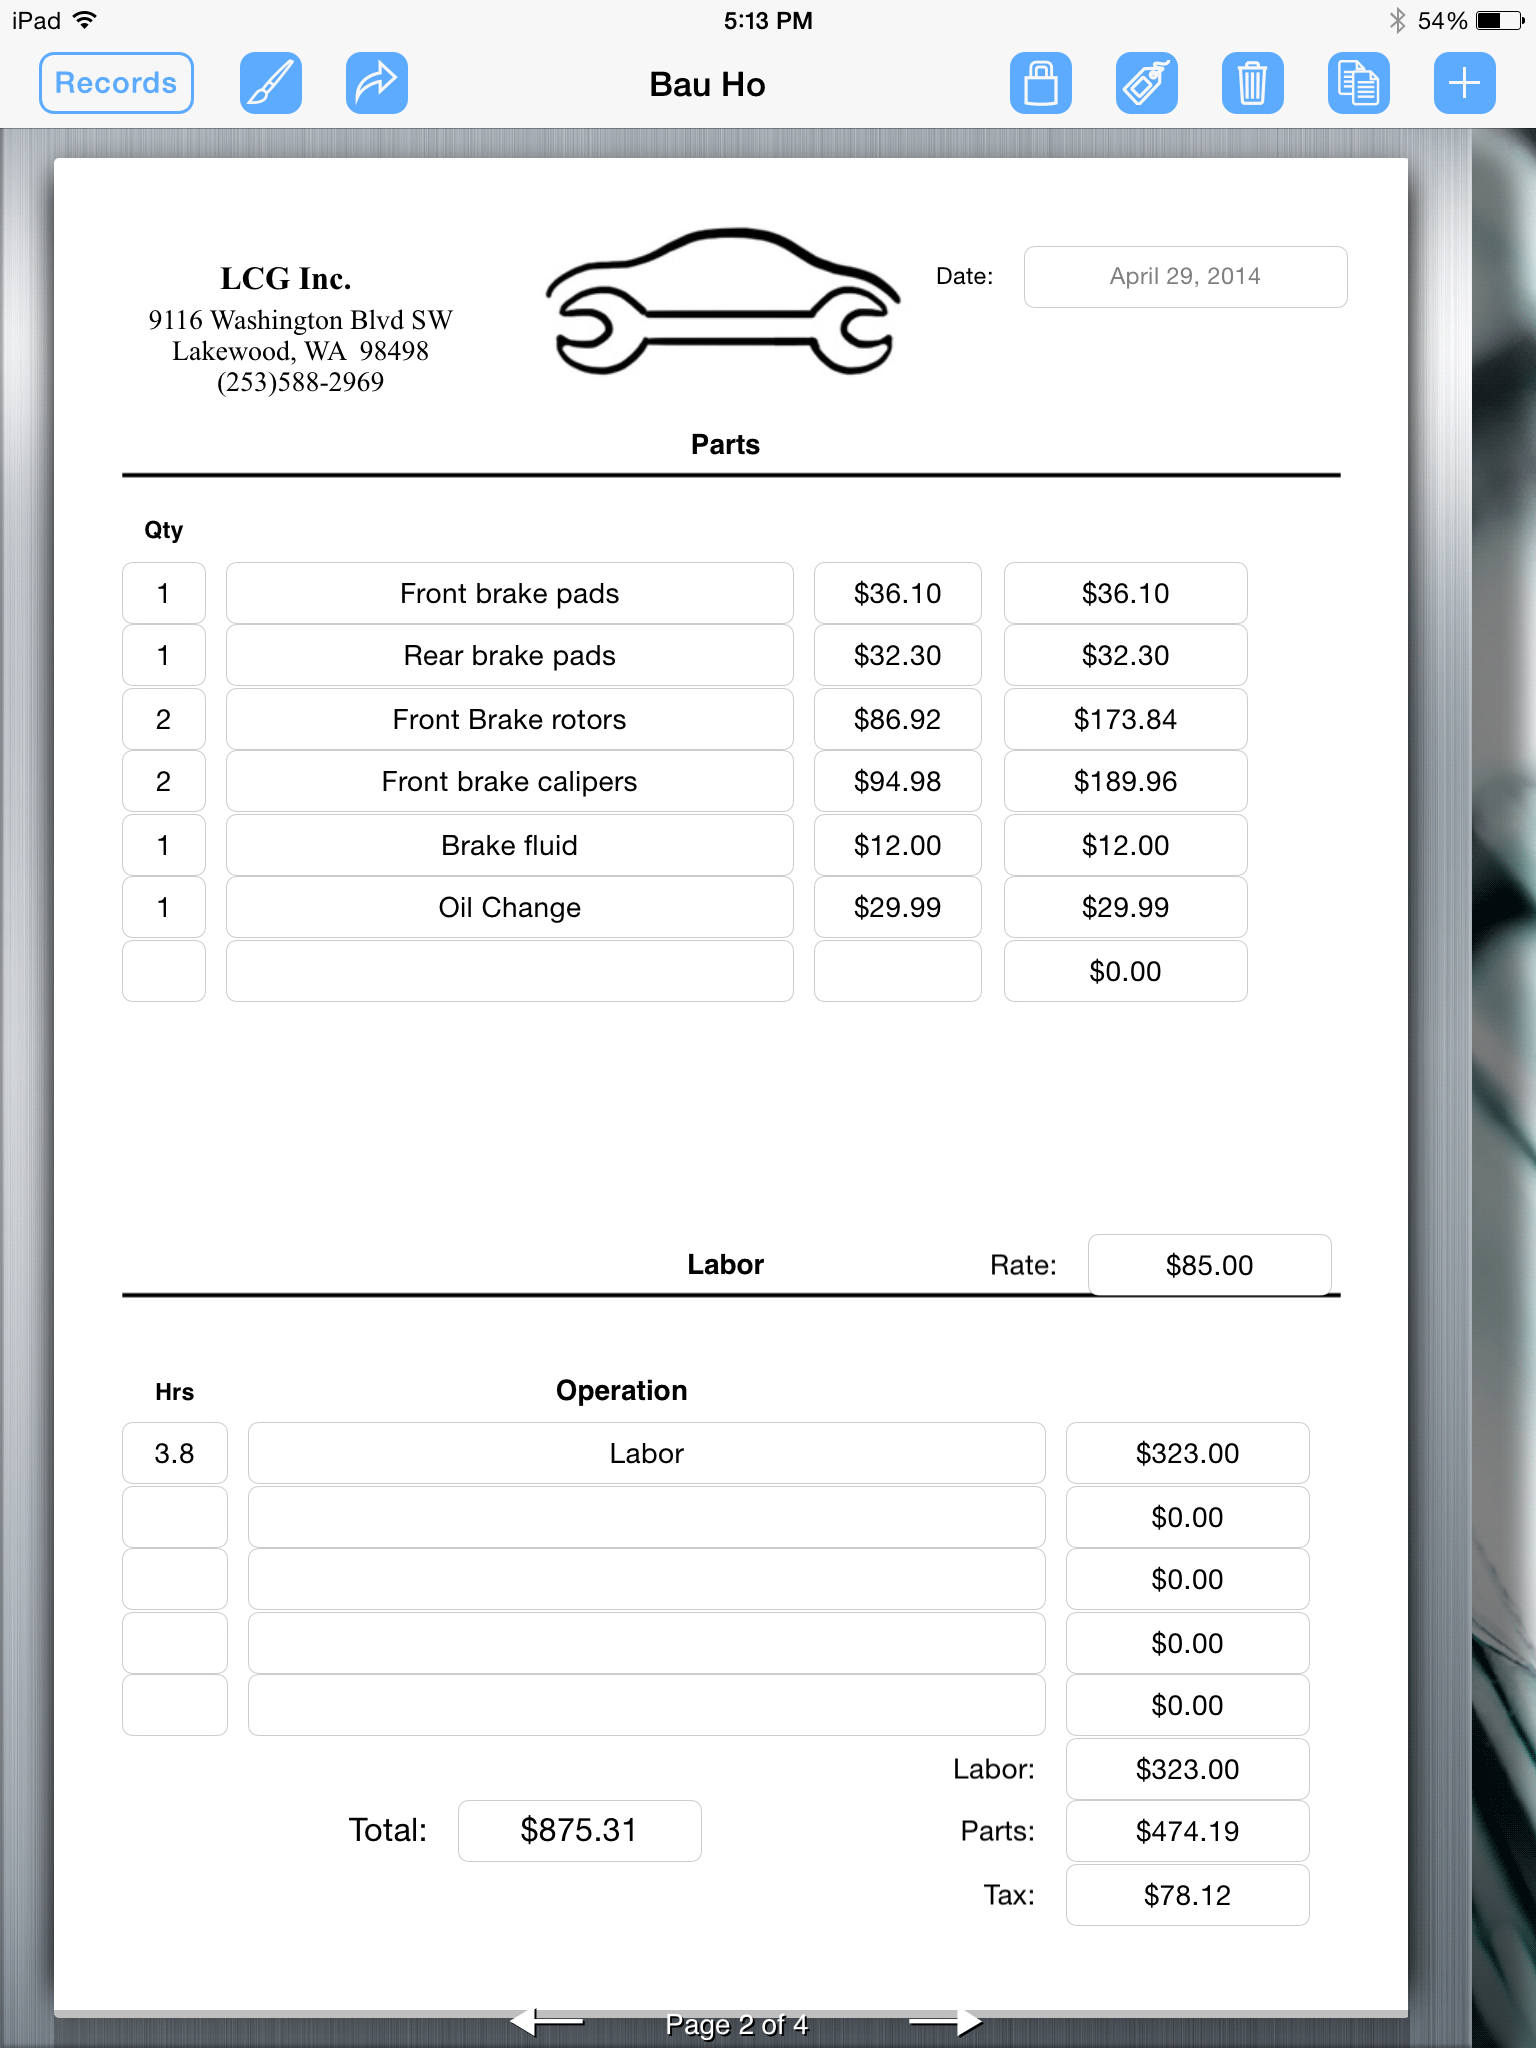 Auto Repair Service Uses IPad For Creating An Invoice Form - Auto repair invoice template